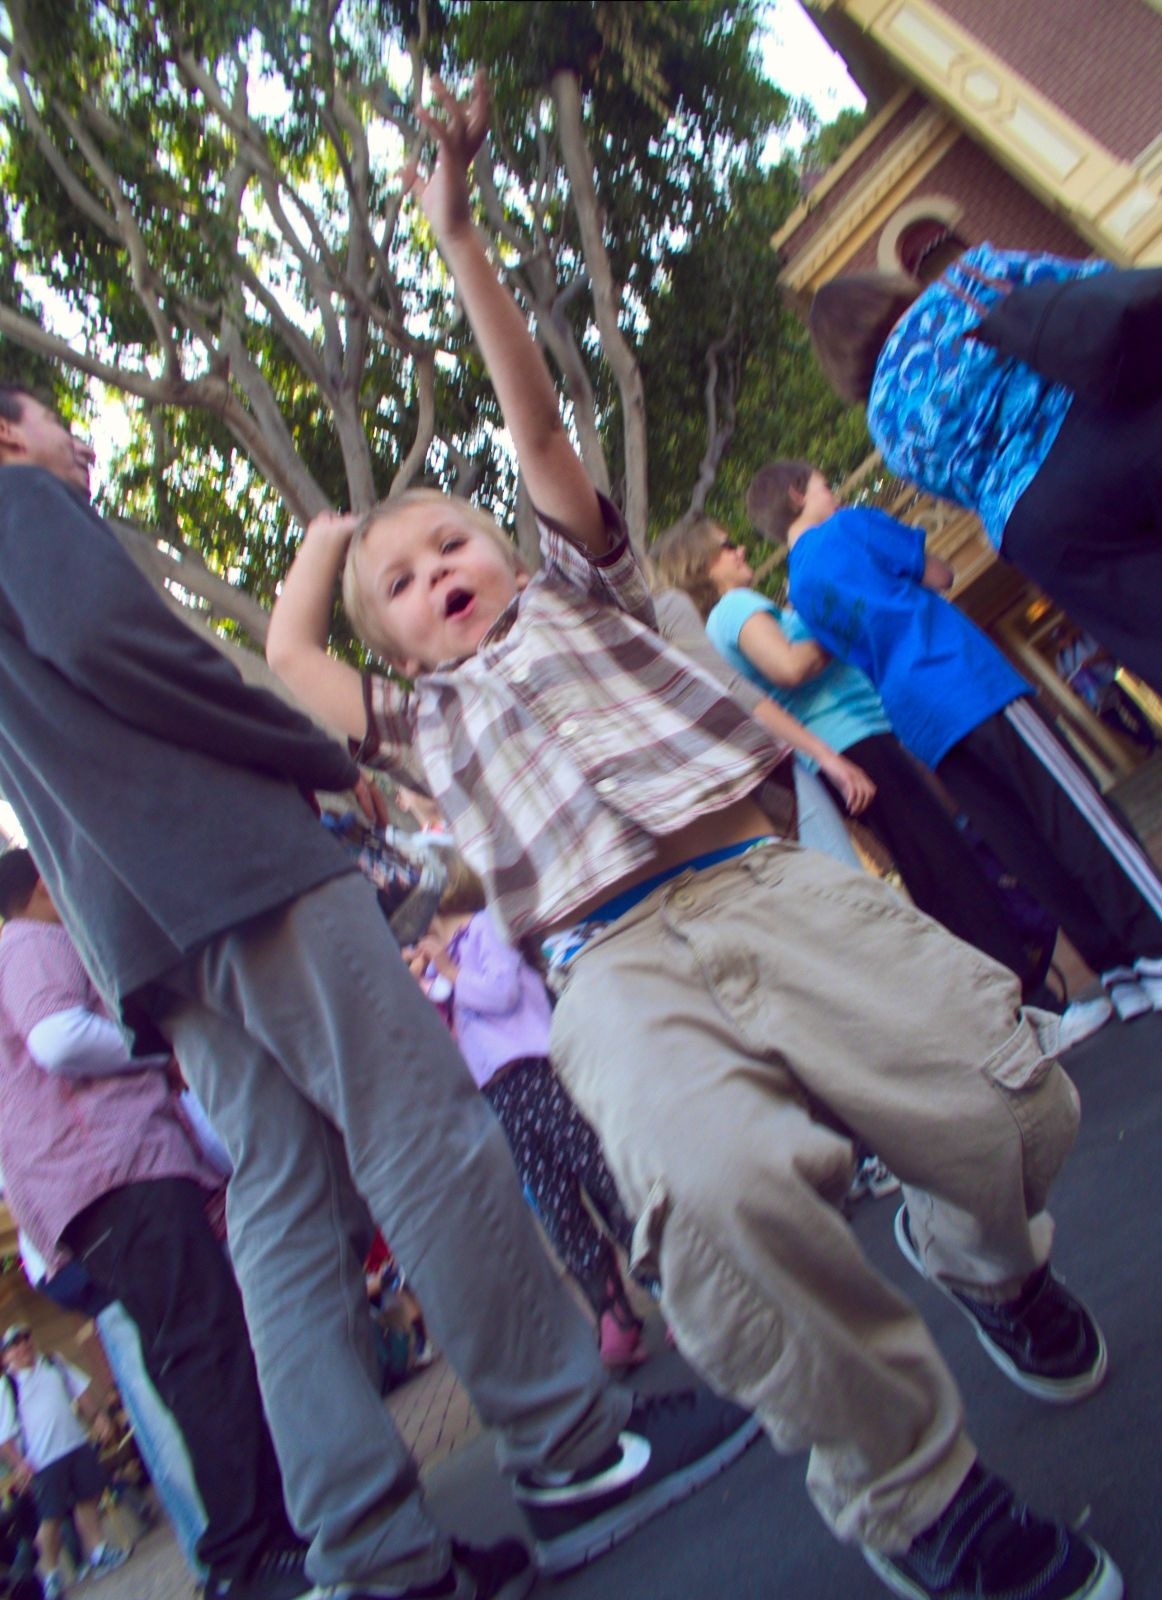 A little boy excited to be at disneyland